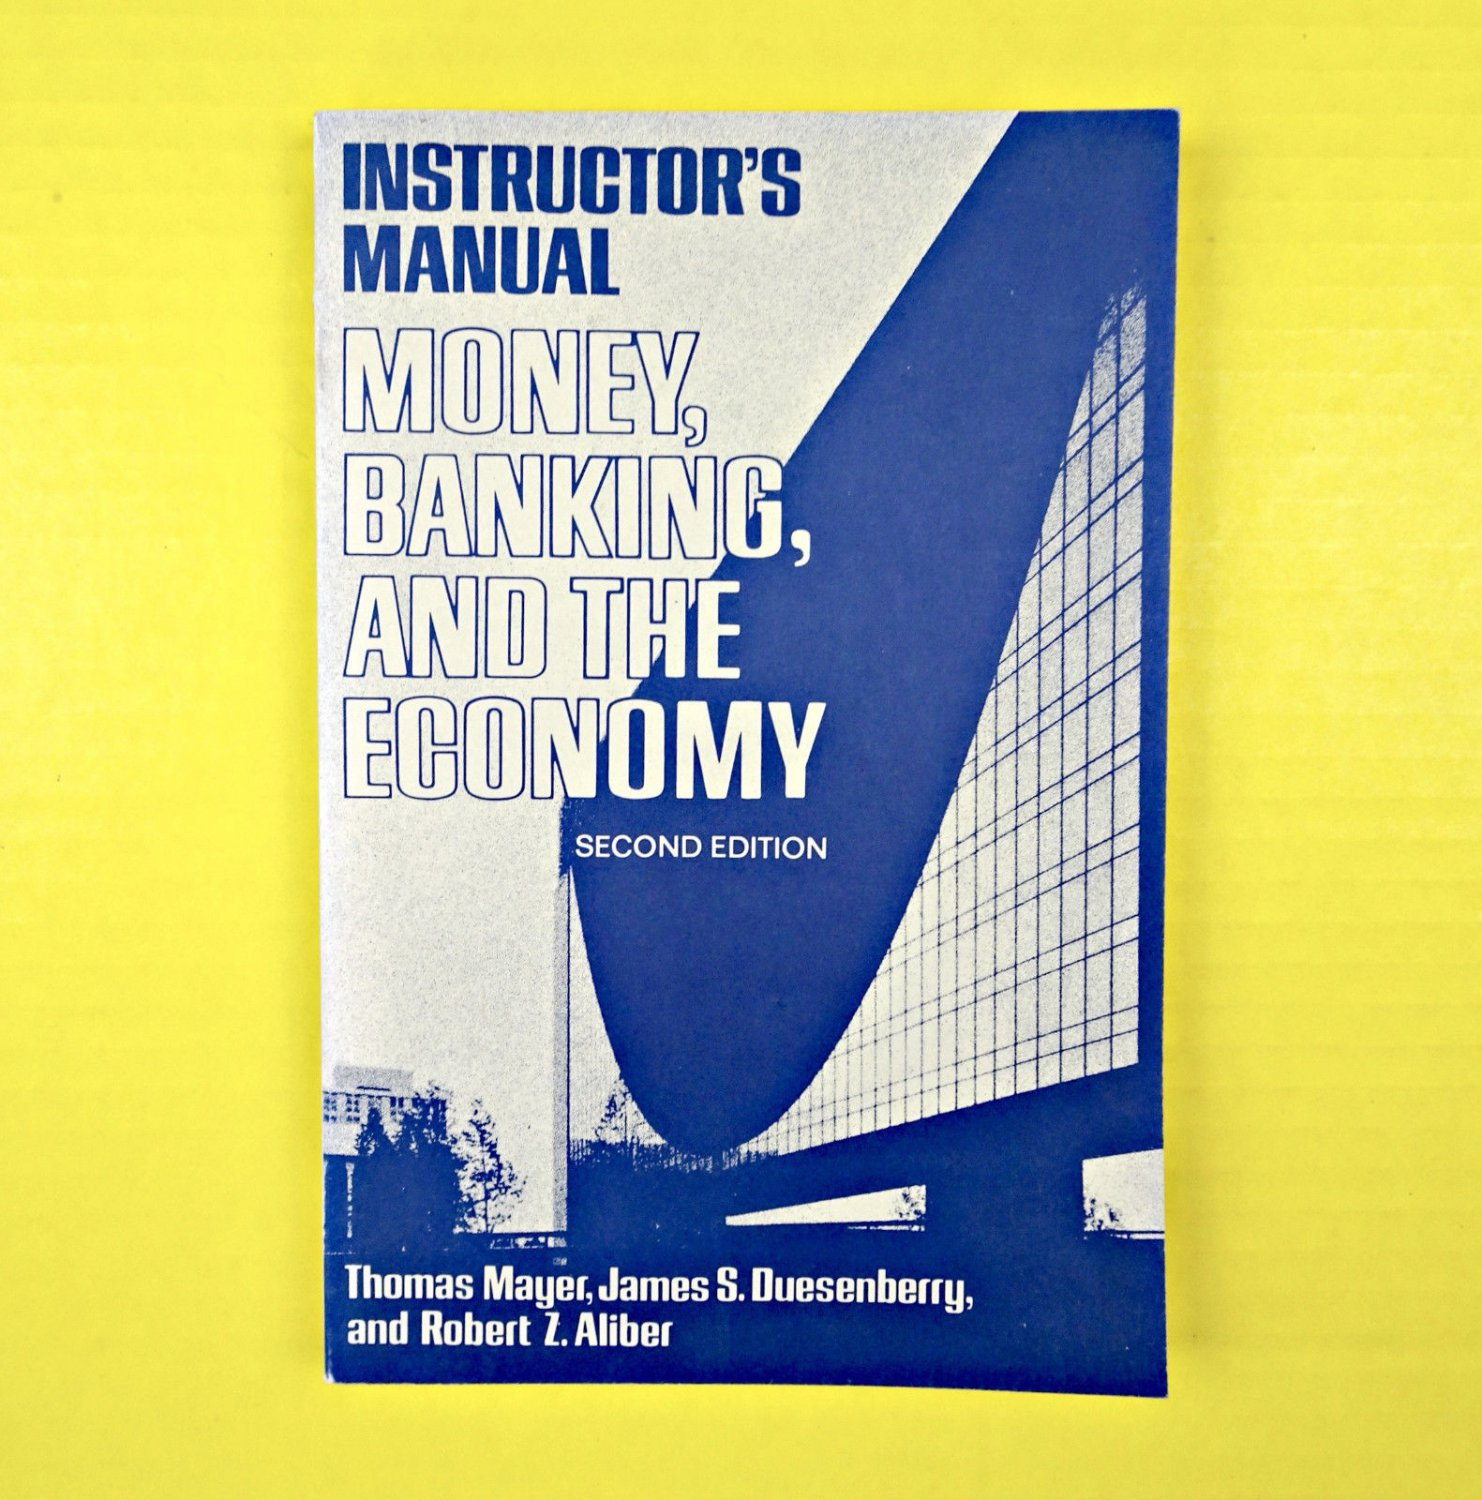 Instructor�s Manual Money, Banking, And The Economy T. Mayer Paperback Book Old